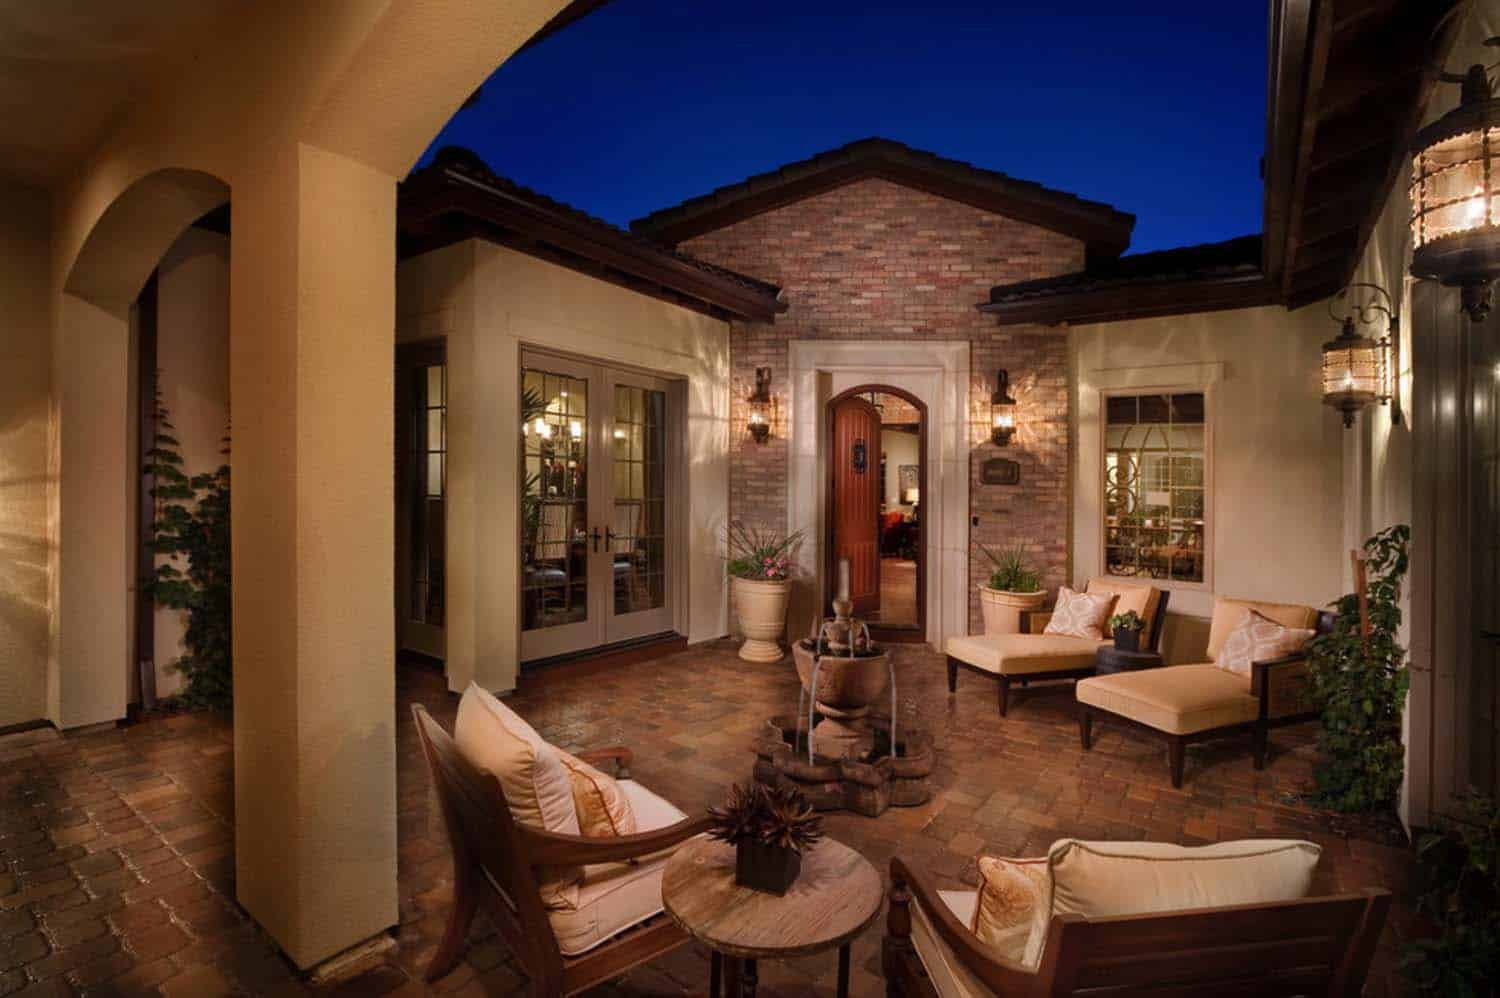 Mediterranean Style Home-Celebrity Communities-44-1 Kindesign